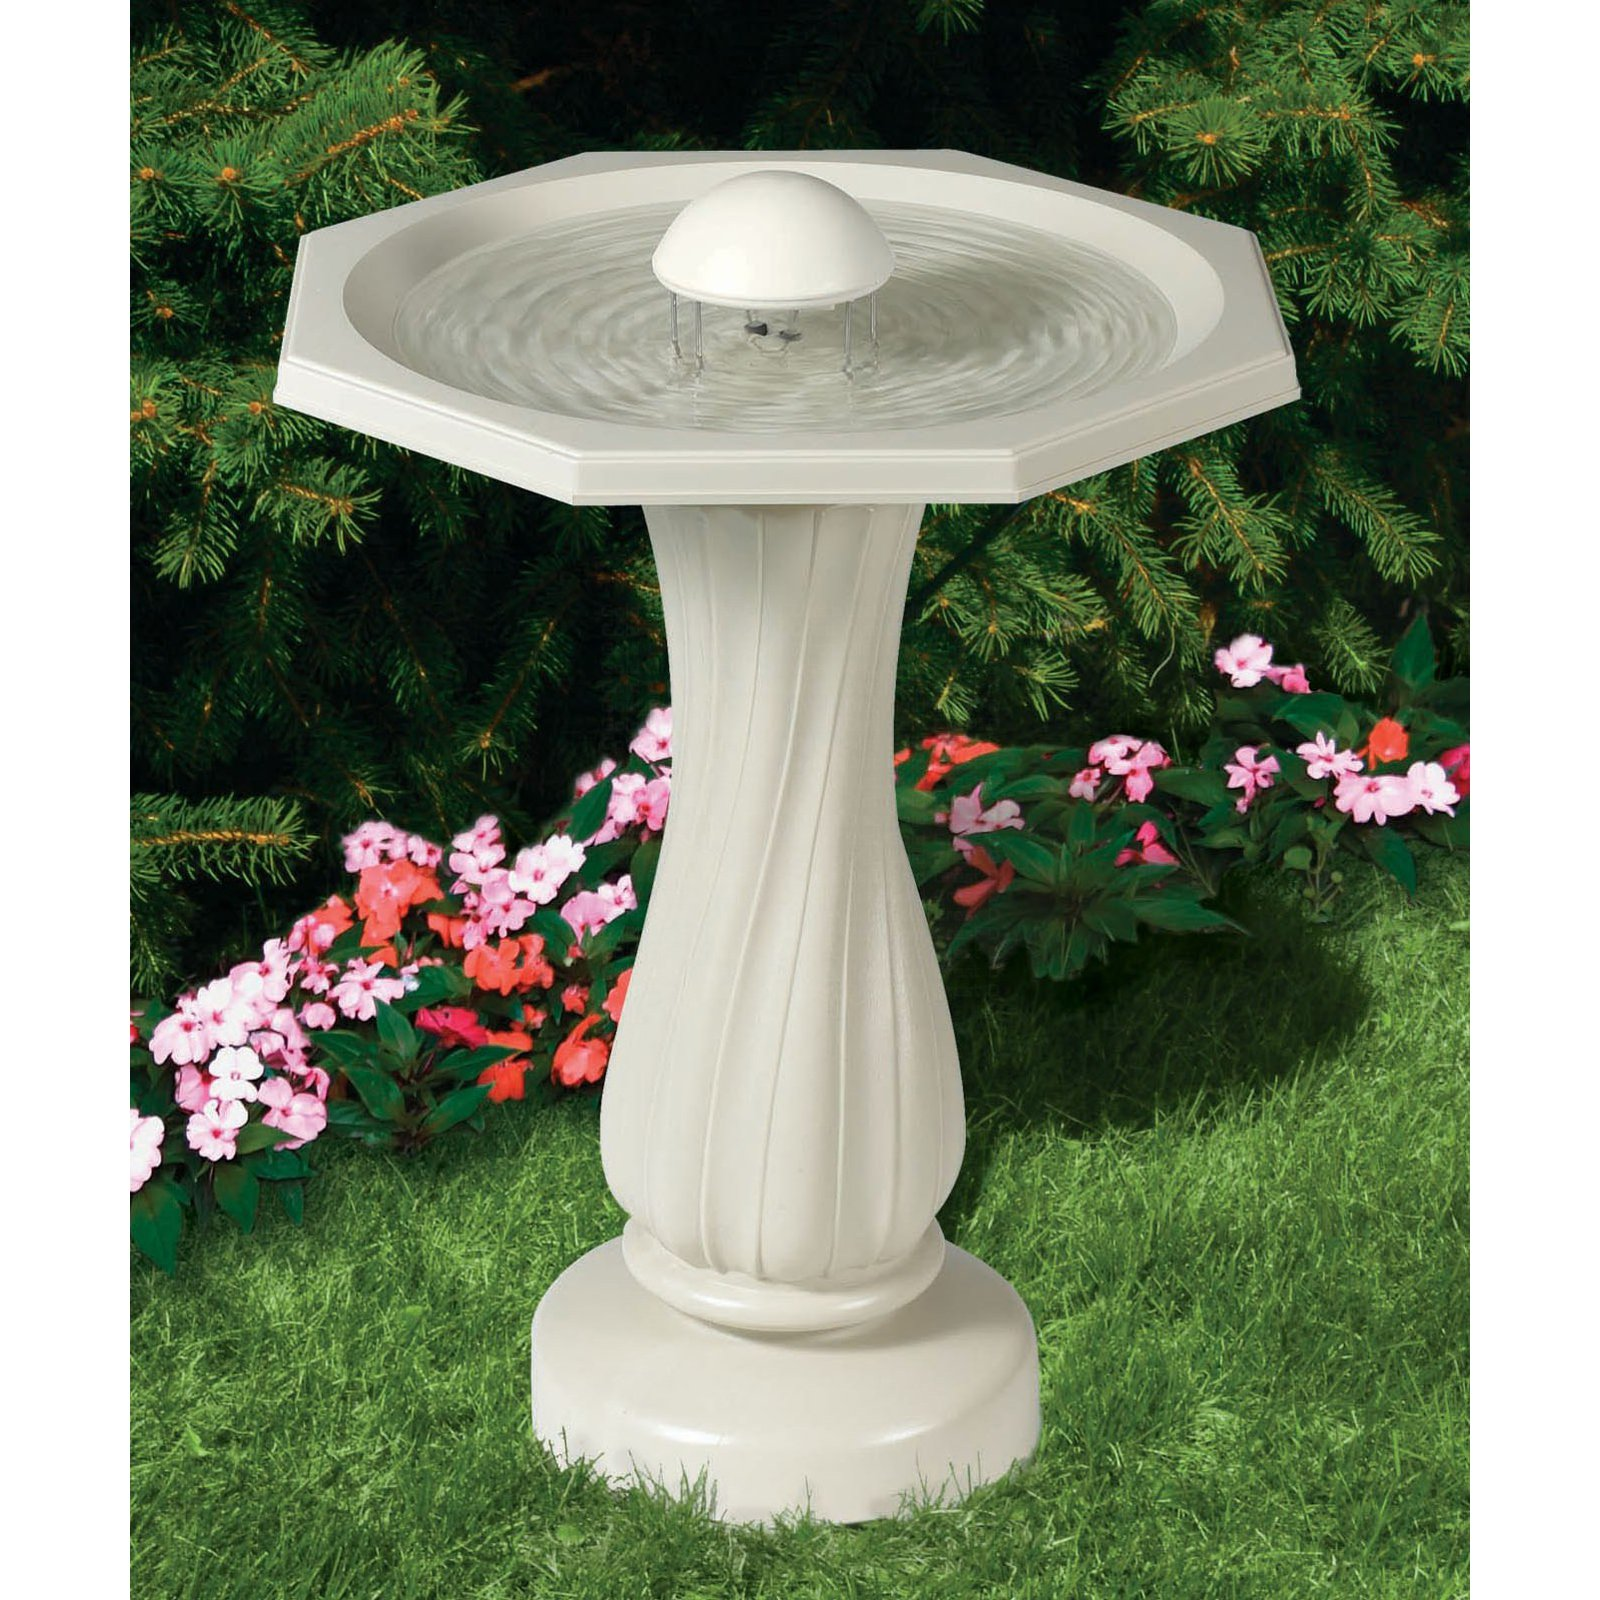 Click here to buy Allied Precision Water Rippling Birdbath 390 by Gold Crest Distributing LLC.